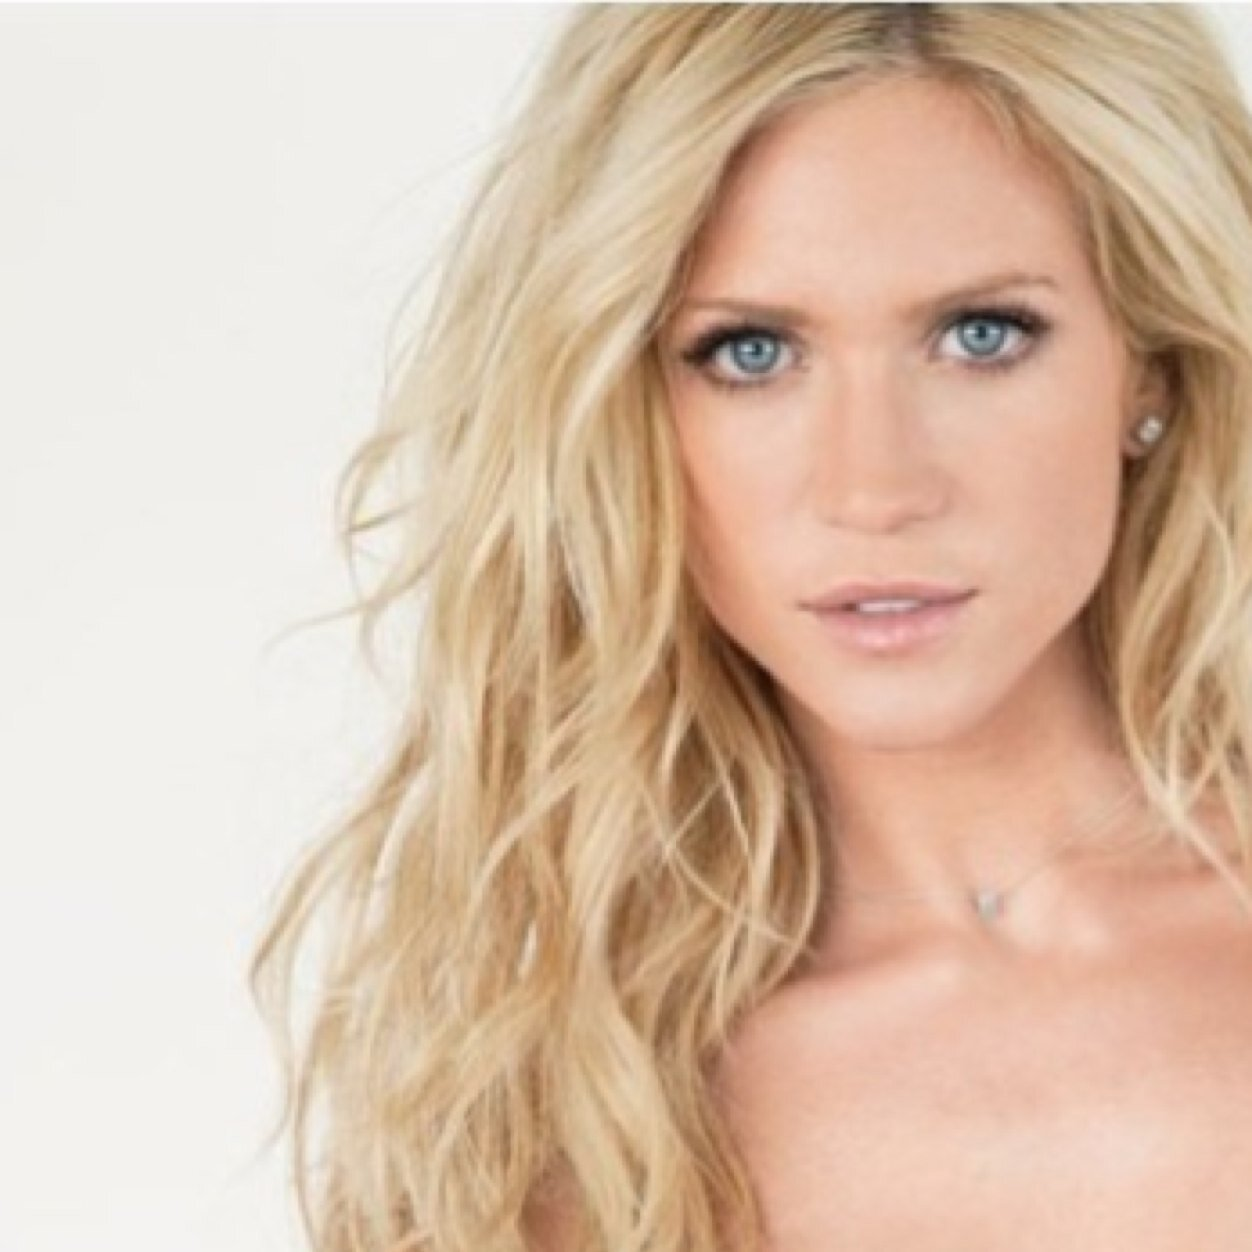 Brittany Snow nudes (97 photo), Ass, Hot, Twitter, panties 2018